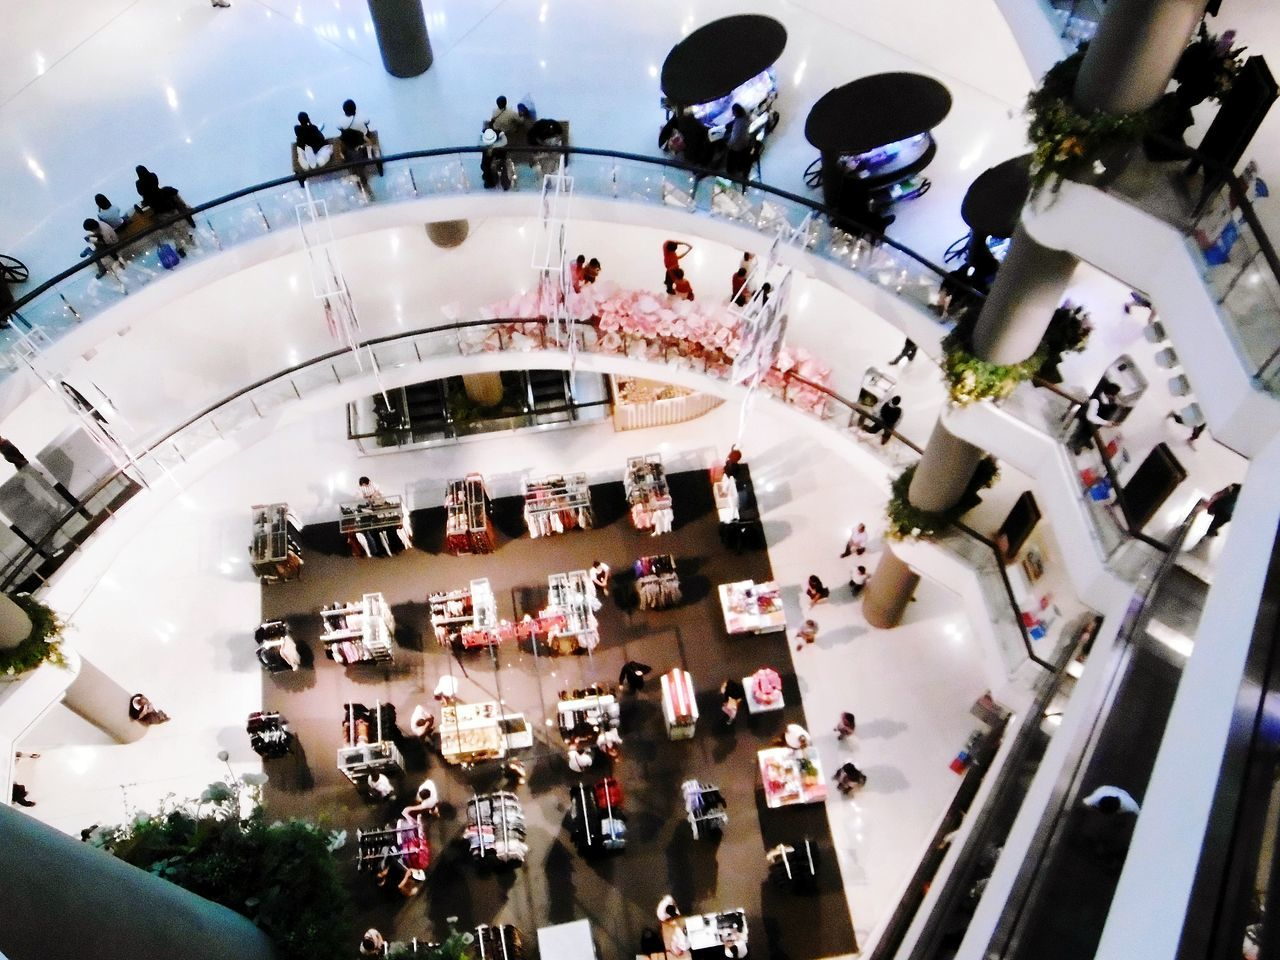 large group of people, real people, high angle view, indoors, built structure, women, architecture, men, crowd, fish-eye lens, day, people